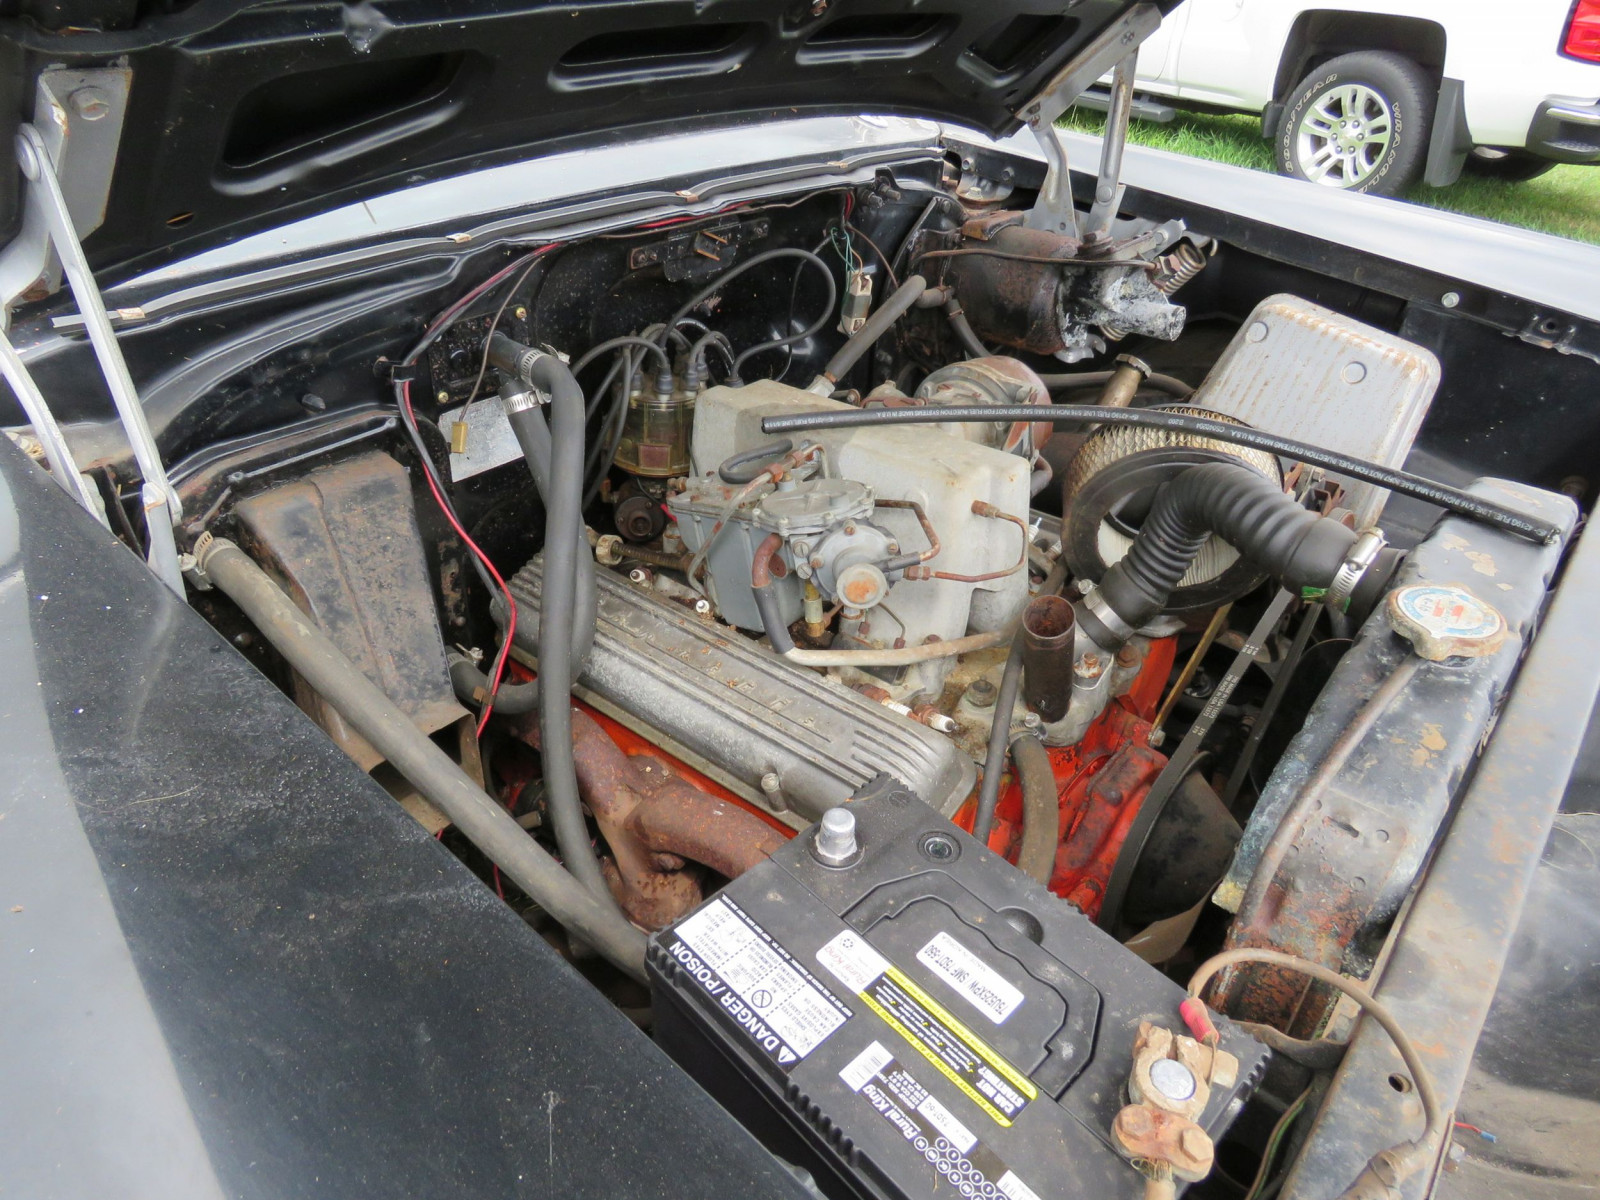 1957 Chevrolet Belair Fuel Injected 2dr HT - Image 13